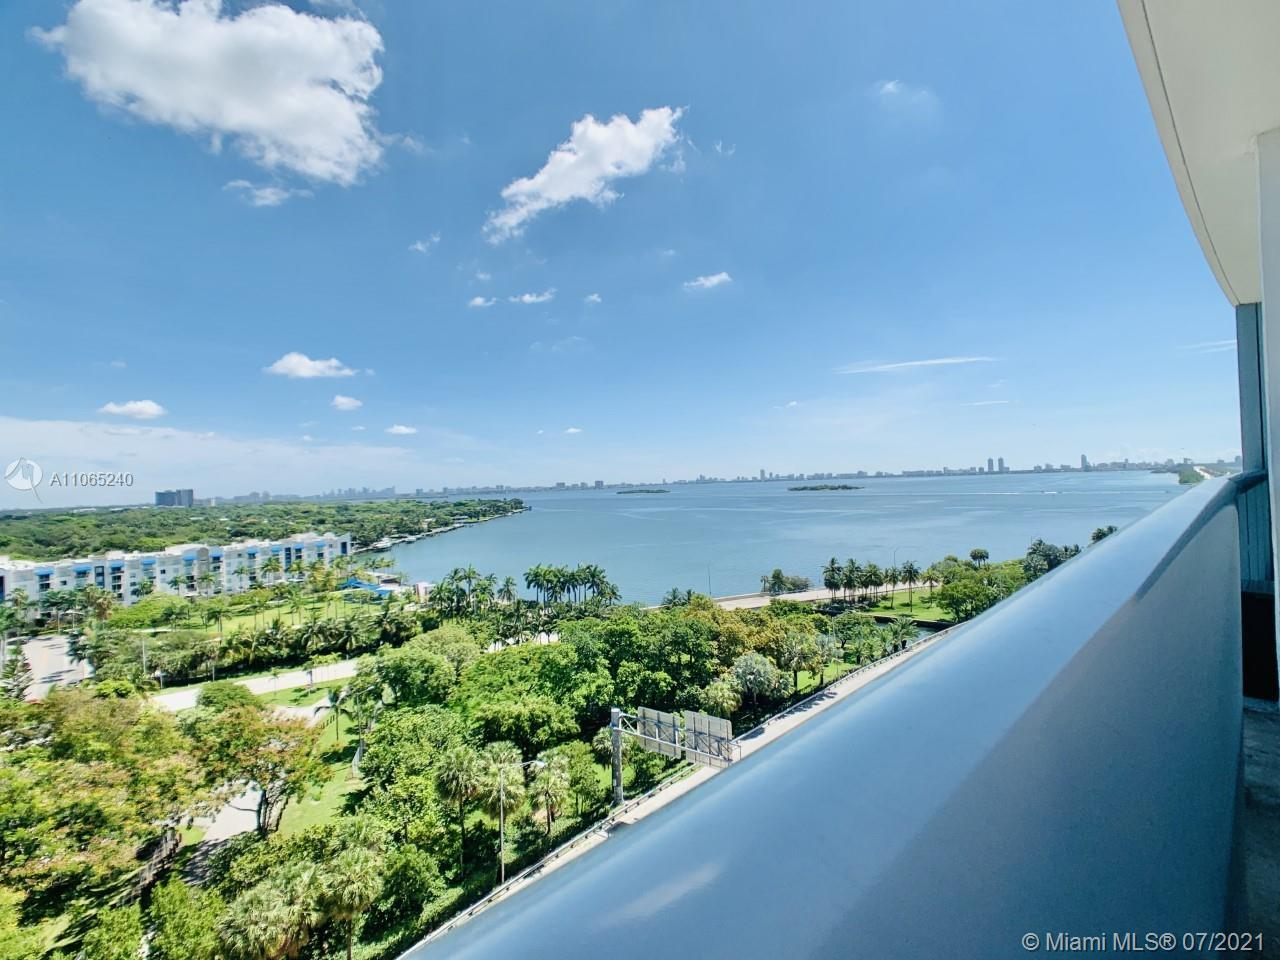 Direct water bay view from this unit 2 bedrooms/ 2.5 baths with an amazing balcony. This views will